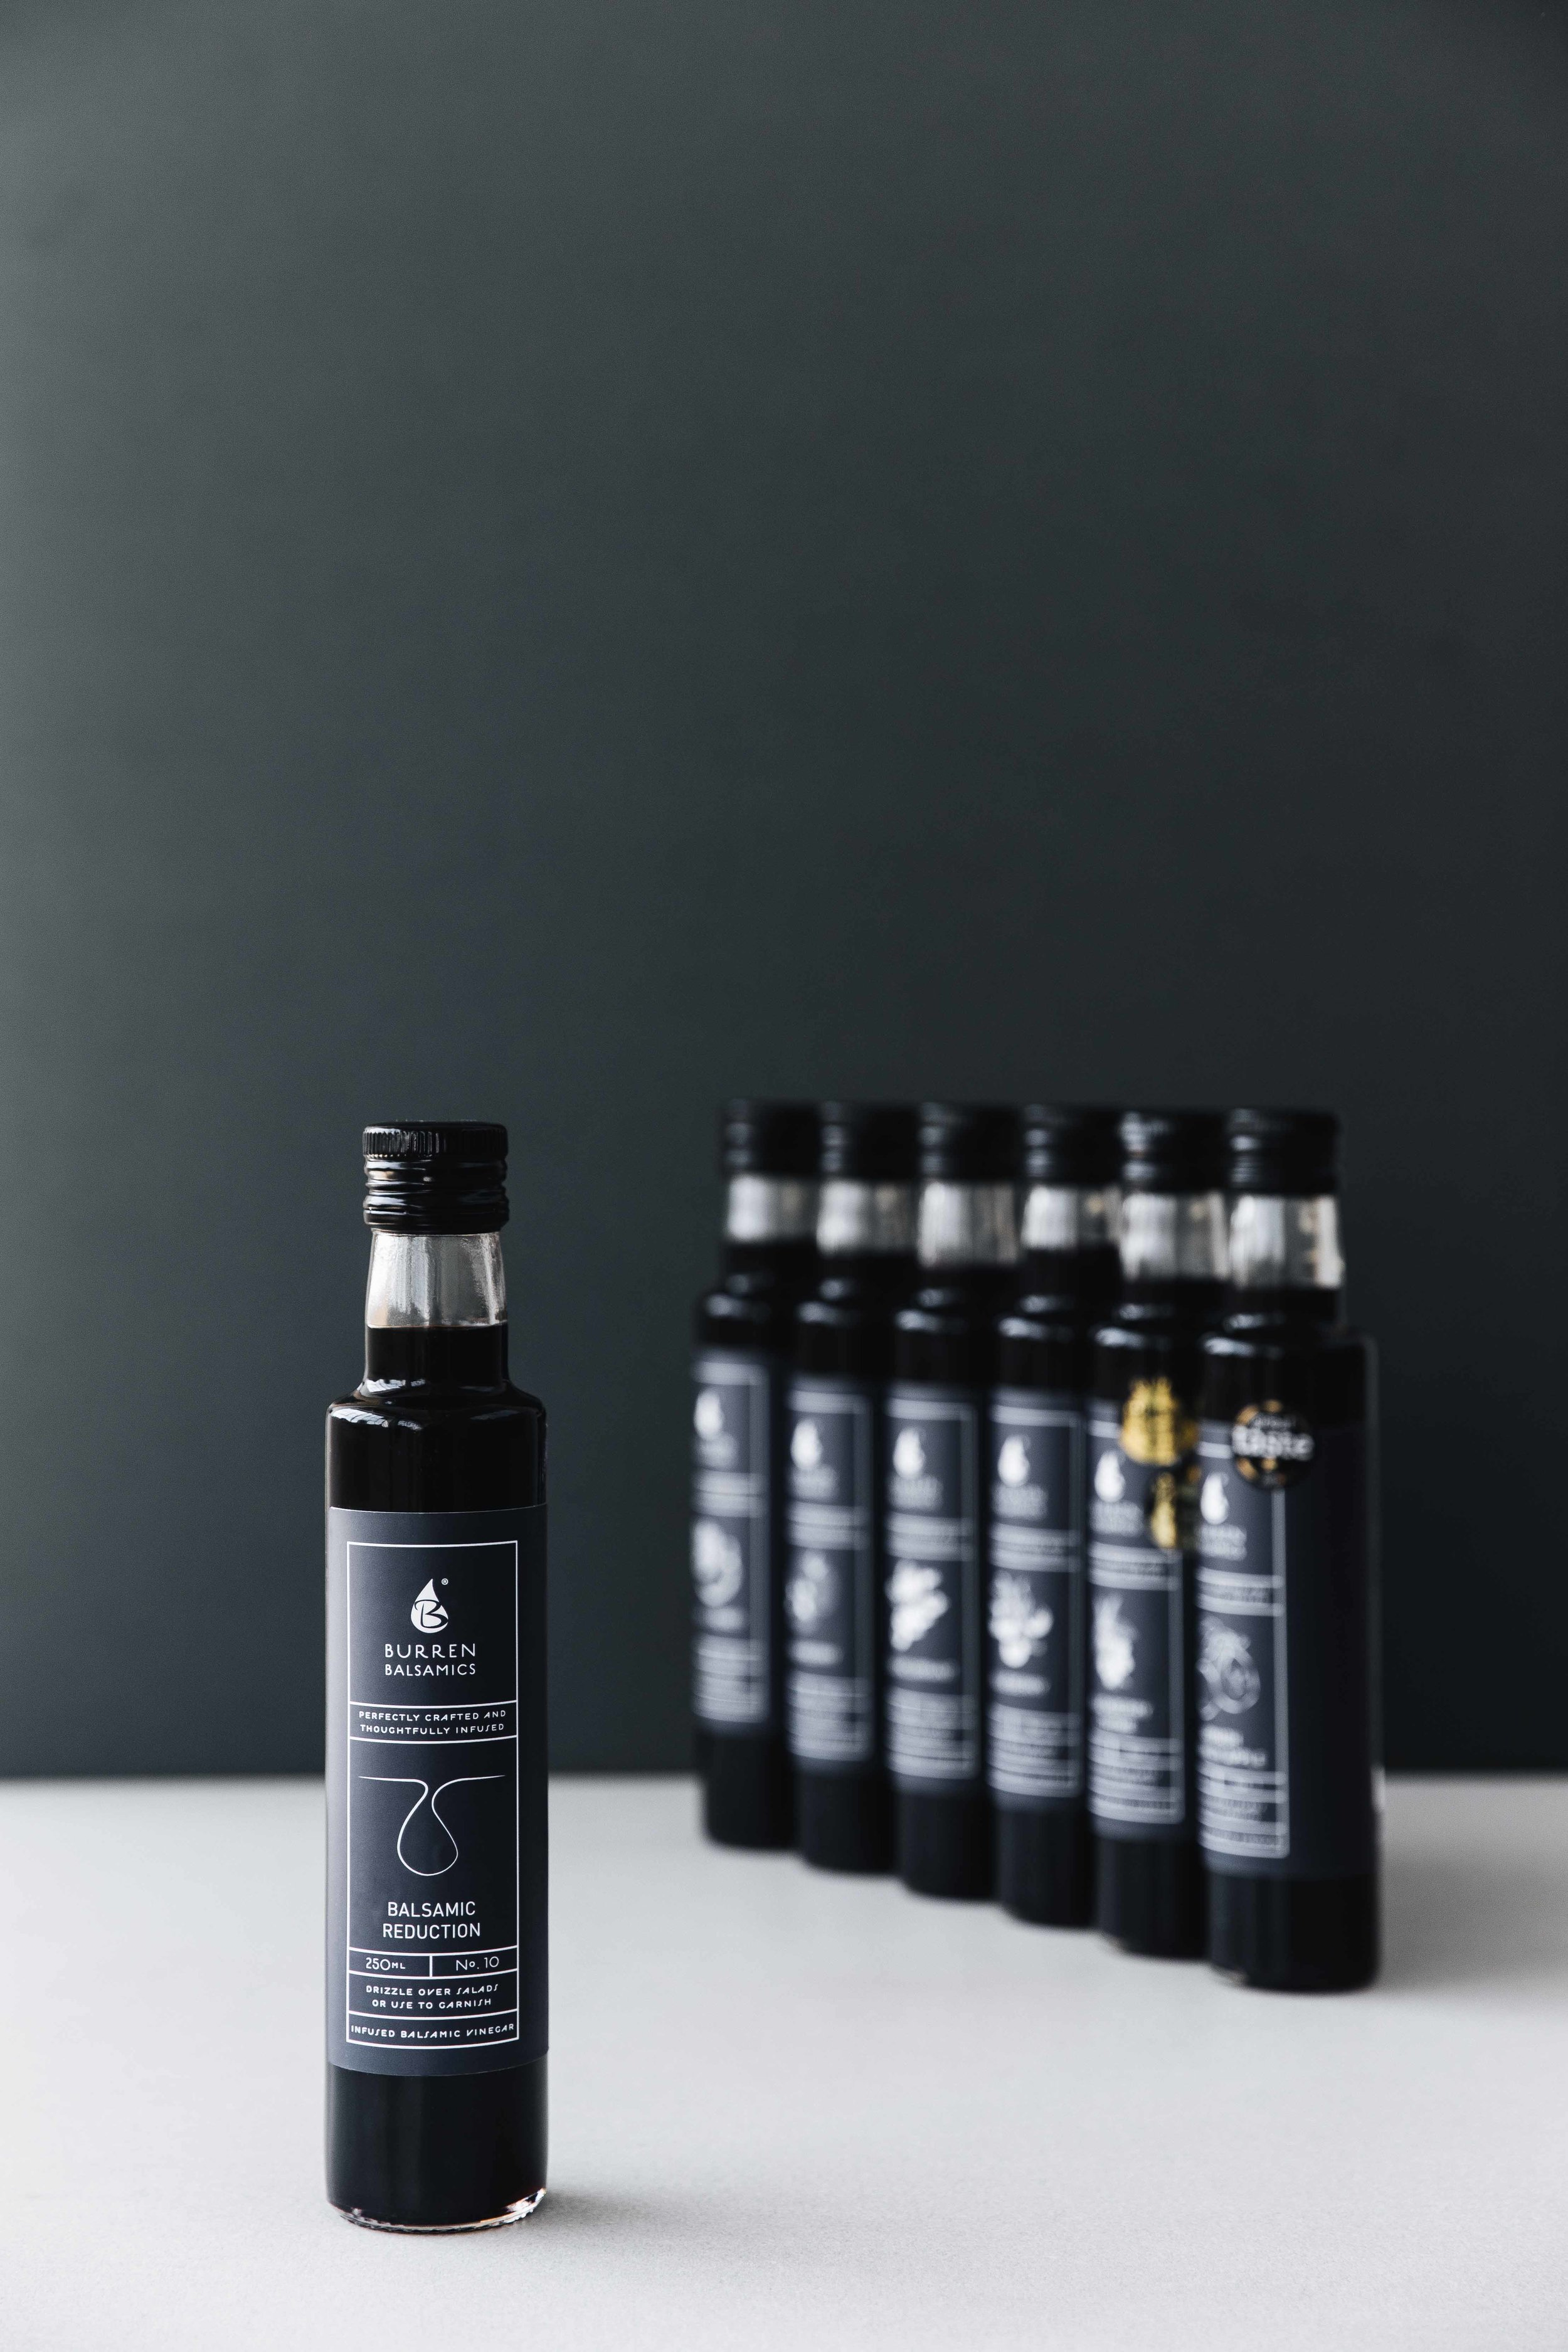 Bolter design packaging design for Burren Balsamics